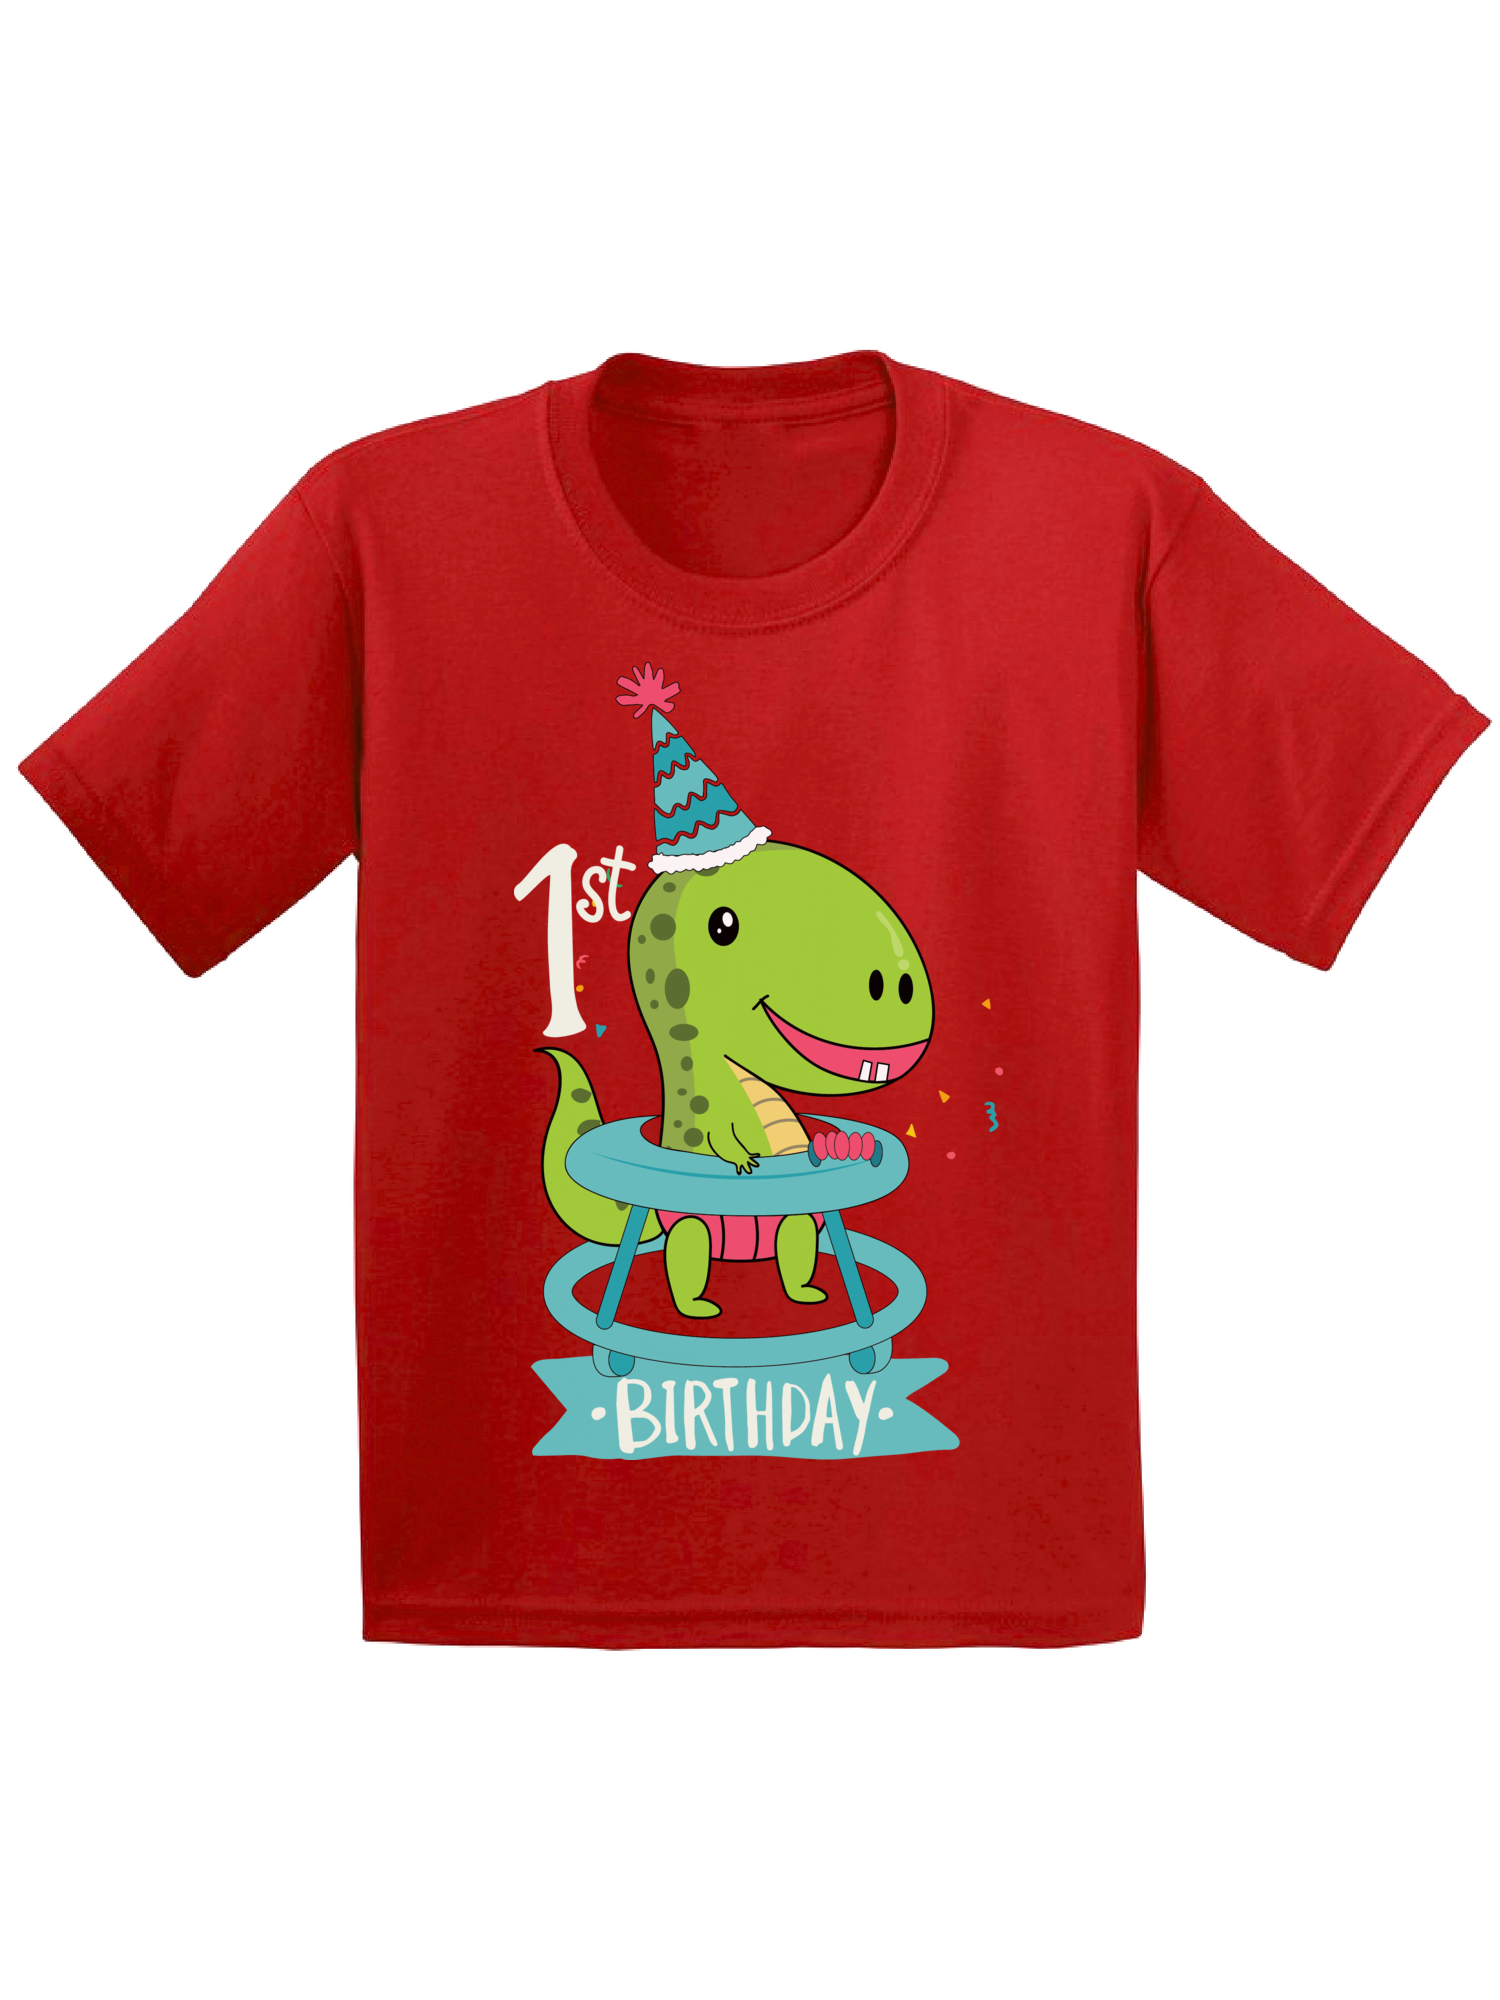 Birthday Tshirt For Baby 1st Infant Shirt First Gifts Dinosaur Boy Girl Shirts 1 Year Old